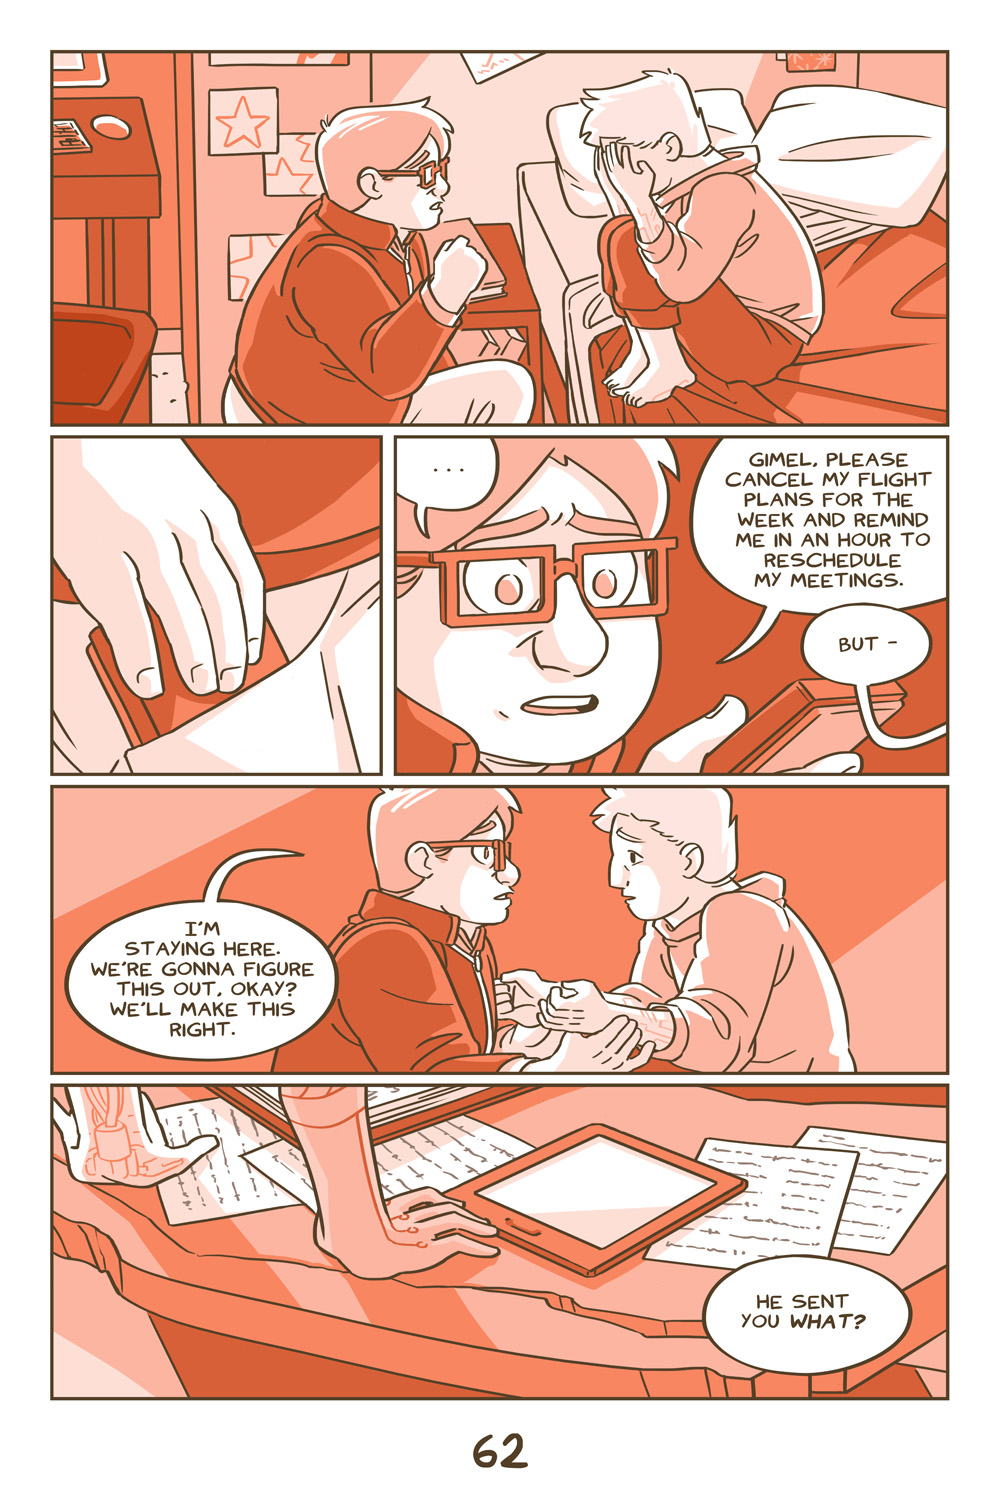 Chapter 6, Page 62